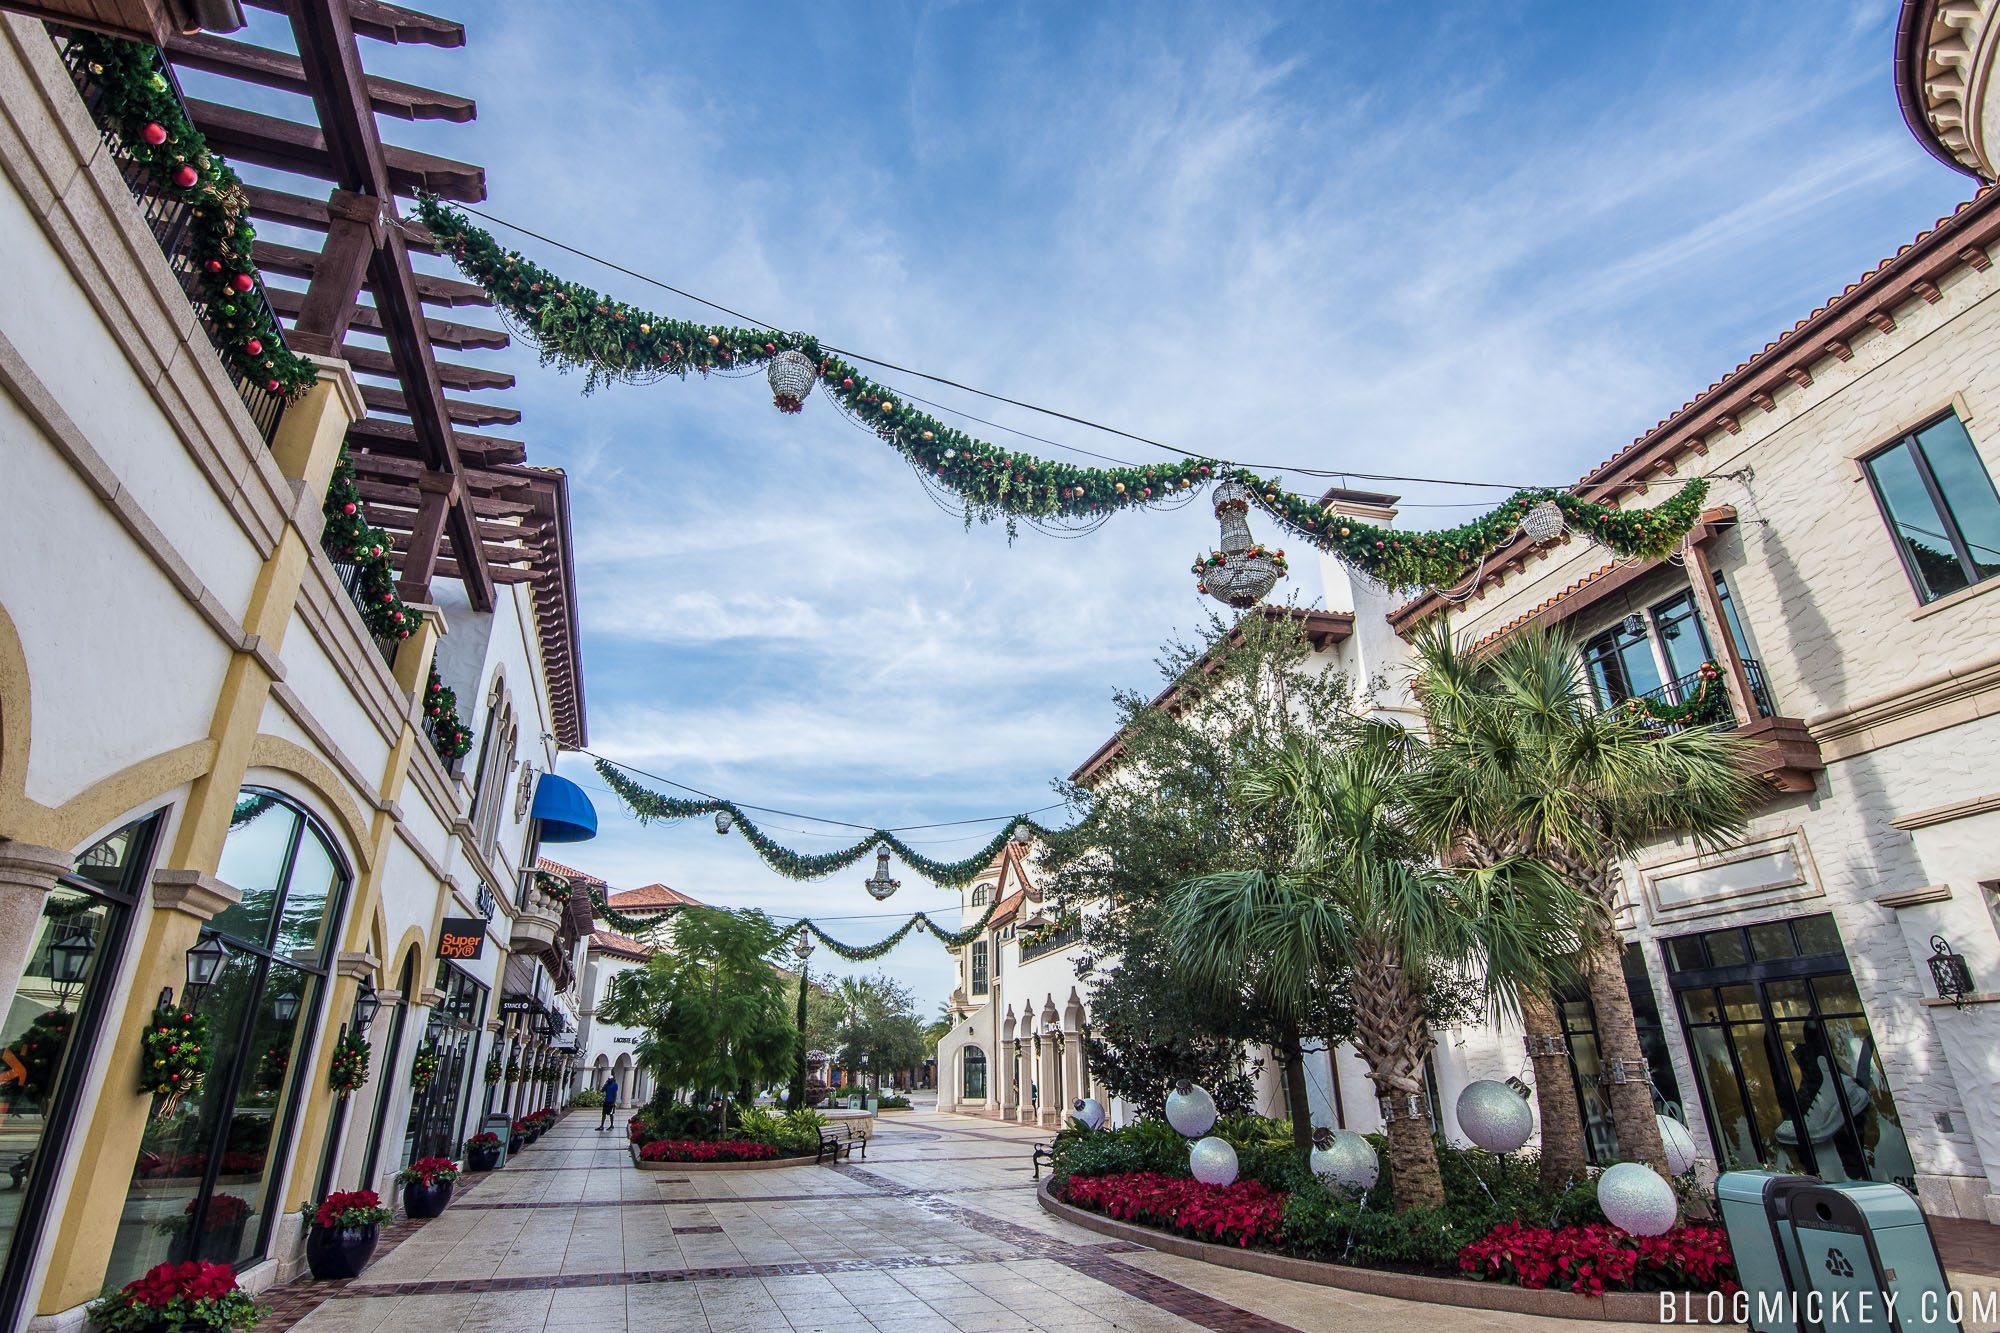 today marked the first day of holiday activities at disney springs in order to get into the holiday spirit town center has been decorated with garland